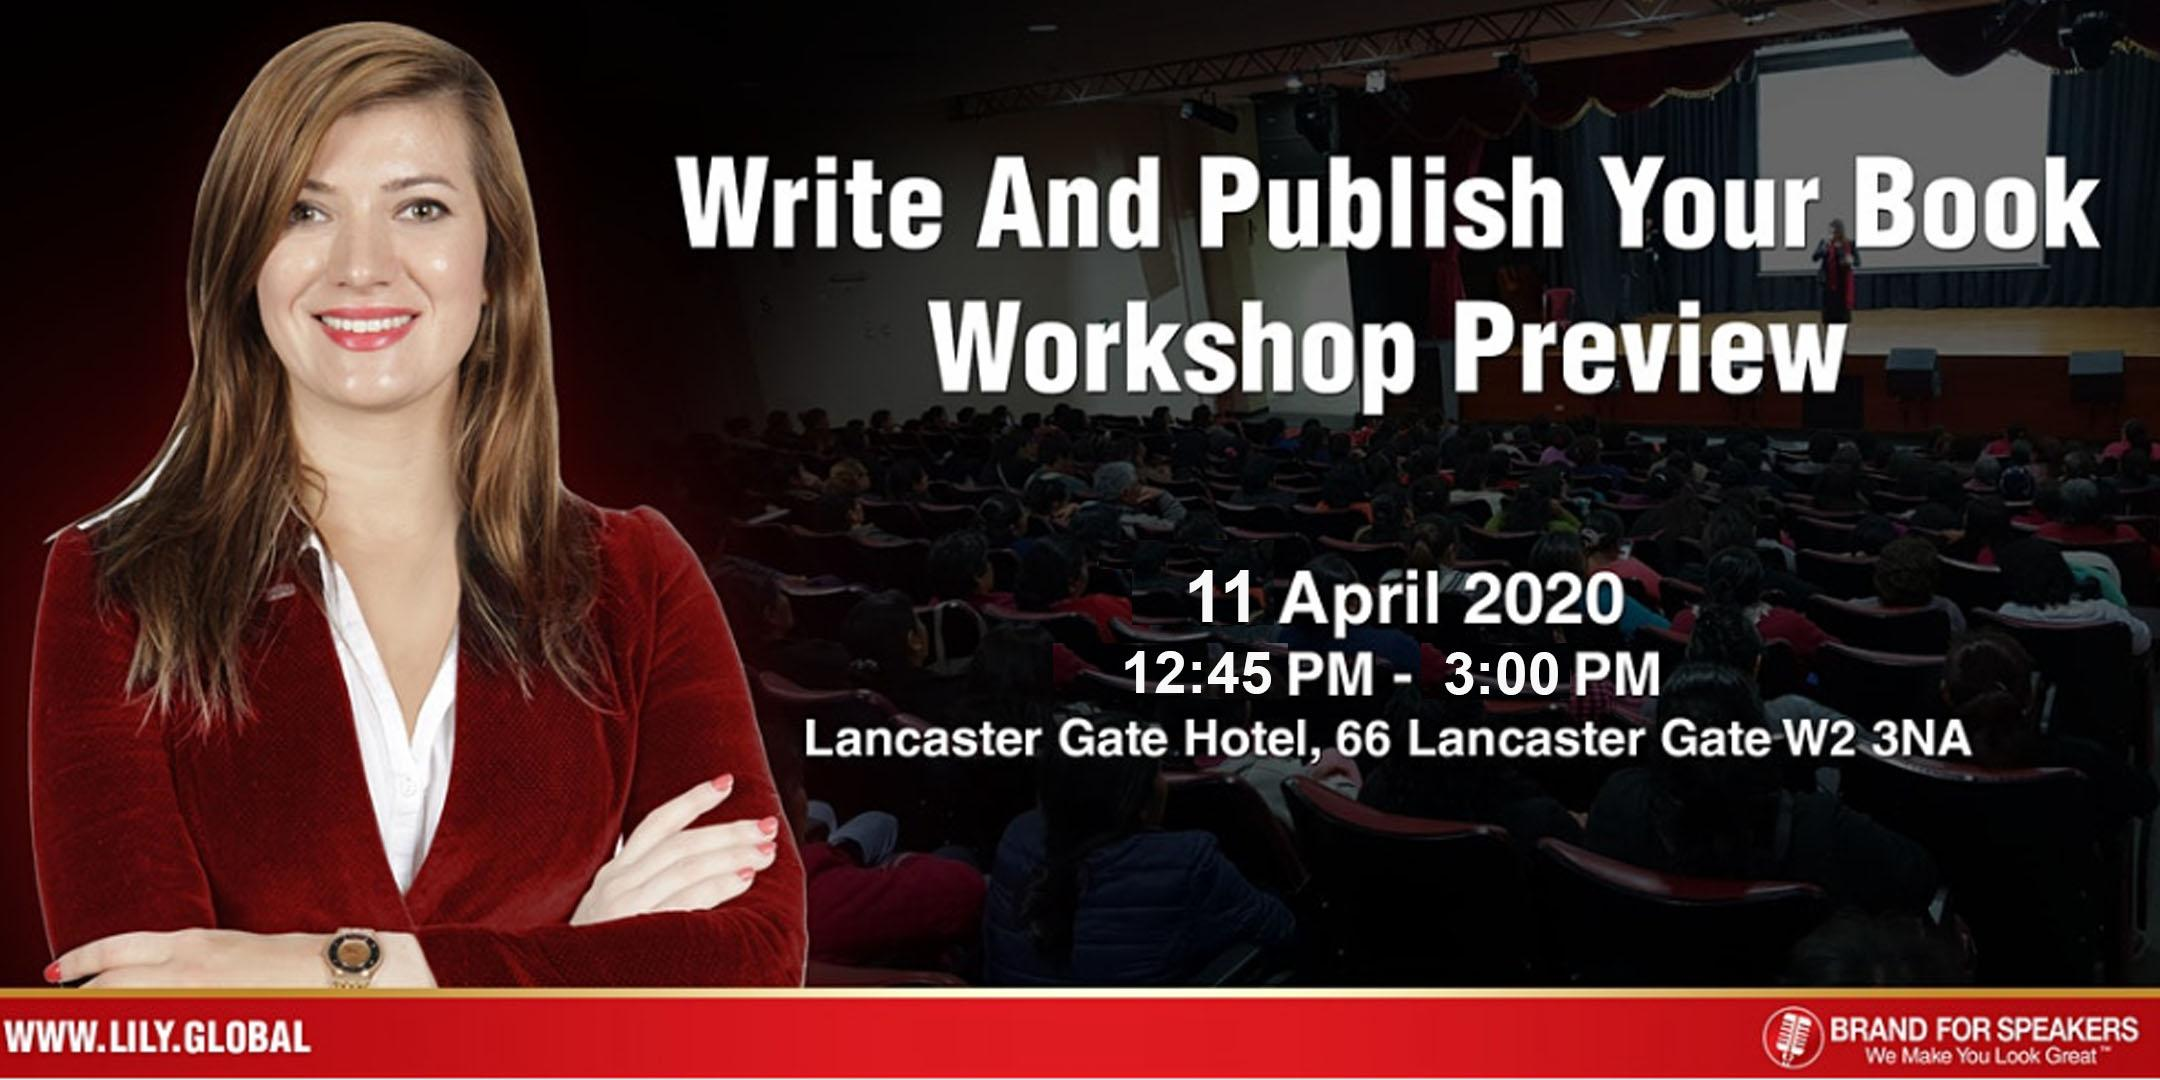 Got No Time But Want To Become An Author?11 April 2020 Noon